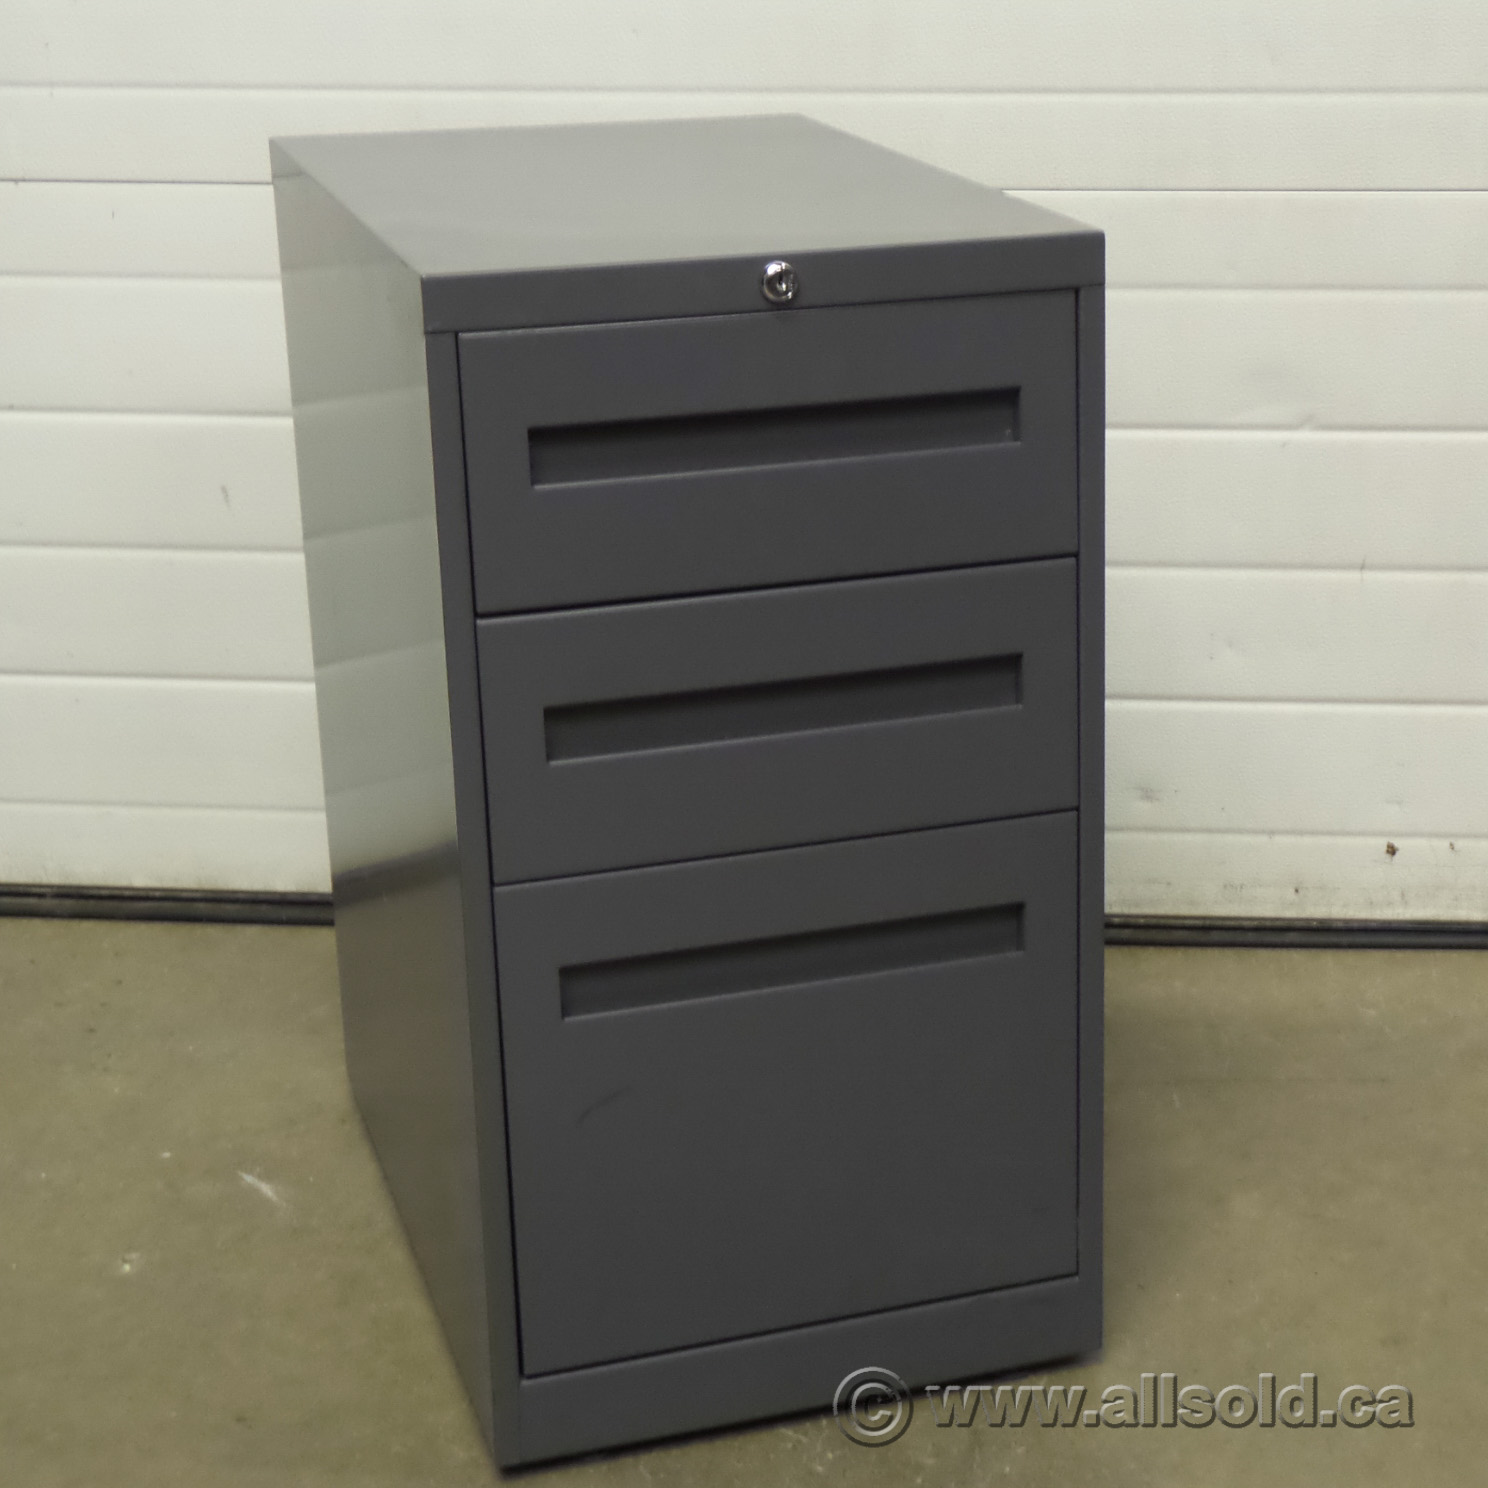 Used Kitchen Cabinets Calgary: Boulevard Grey 3 Drawer Pedestal Cabinet